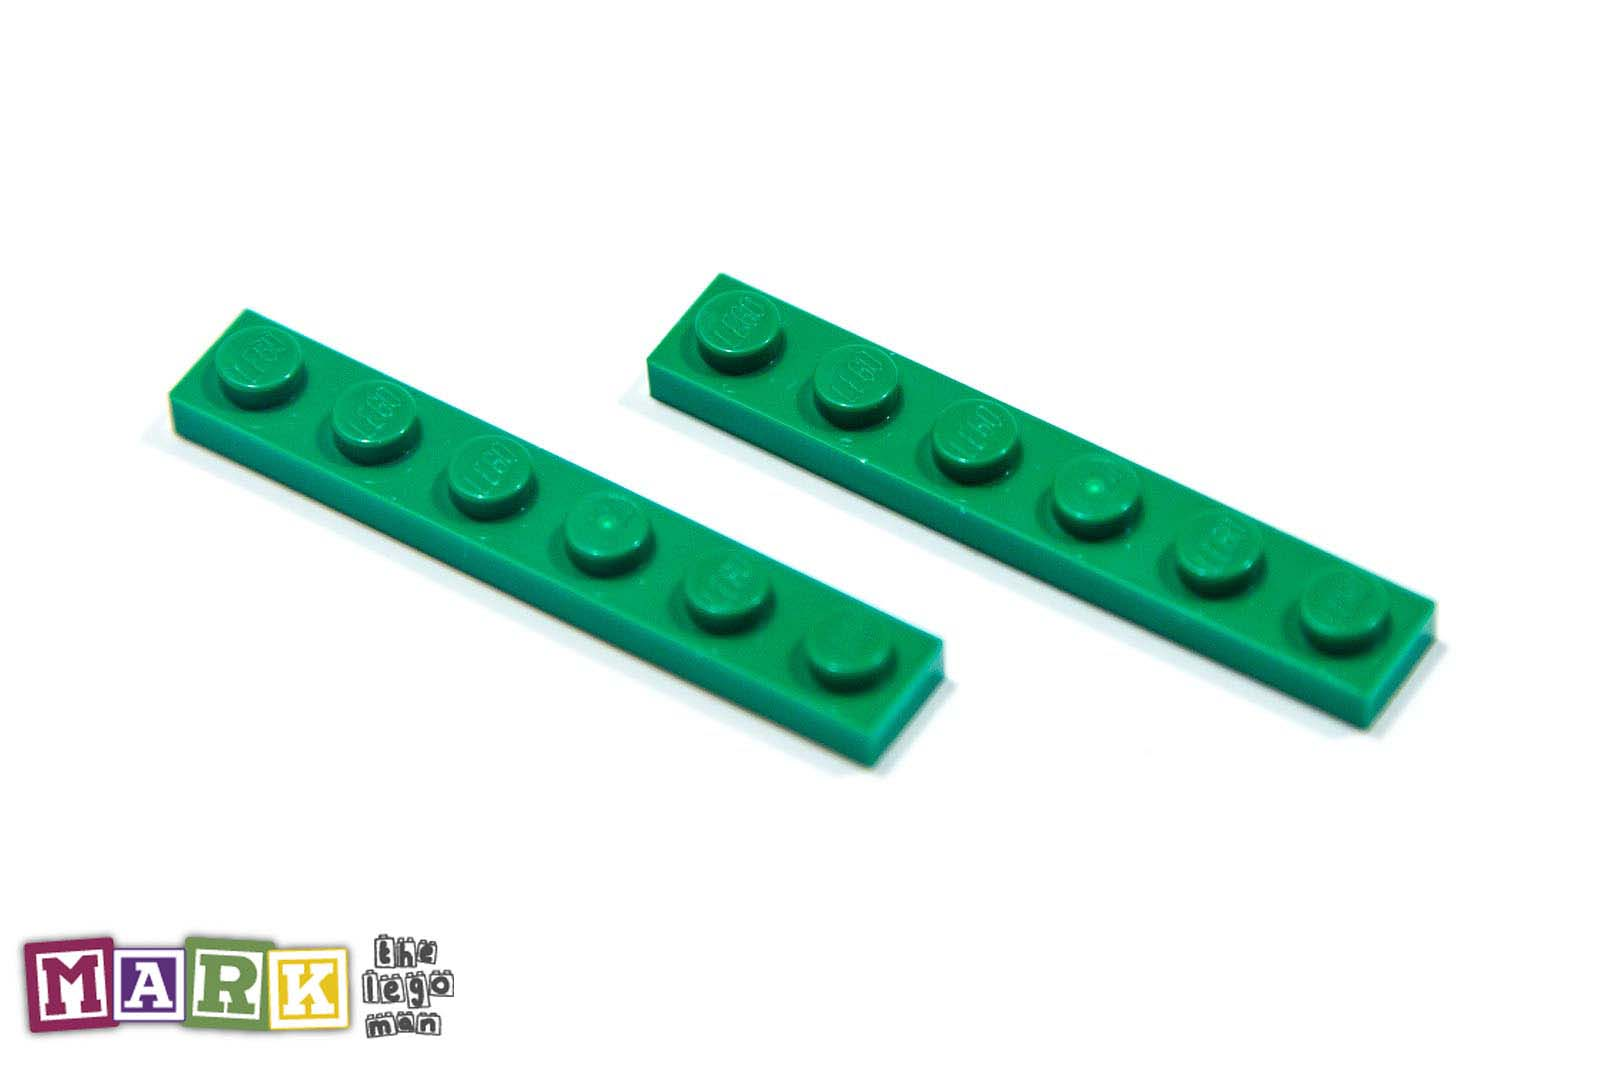 NEW Lego 366628 3666 2x Green 1x6 Plate